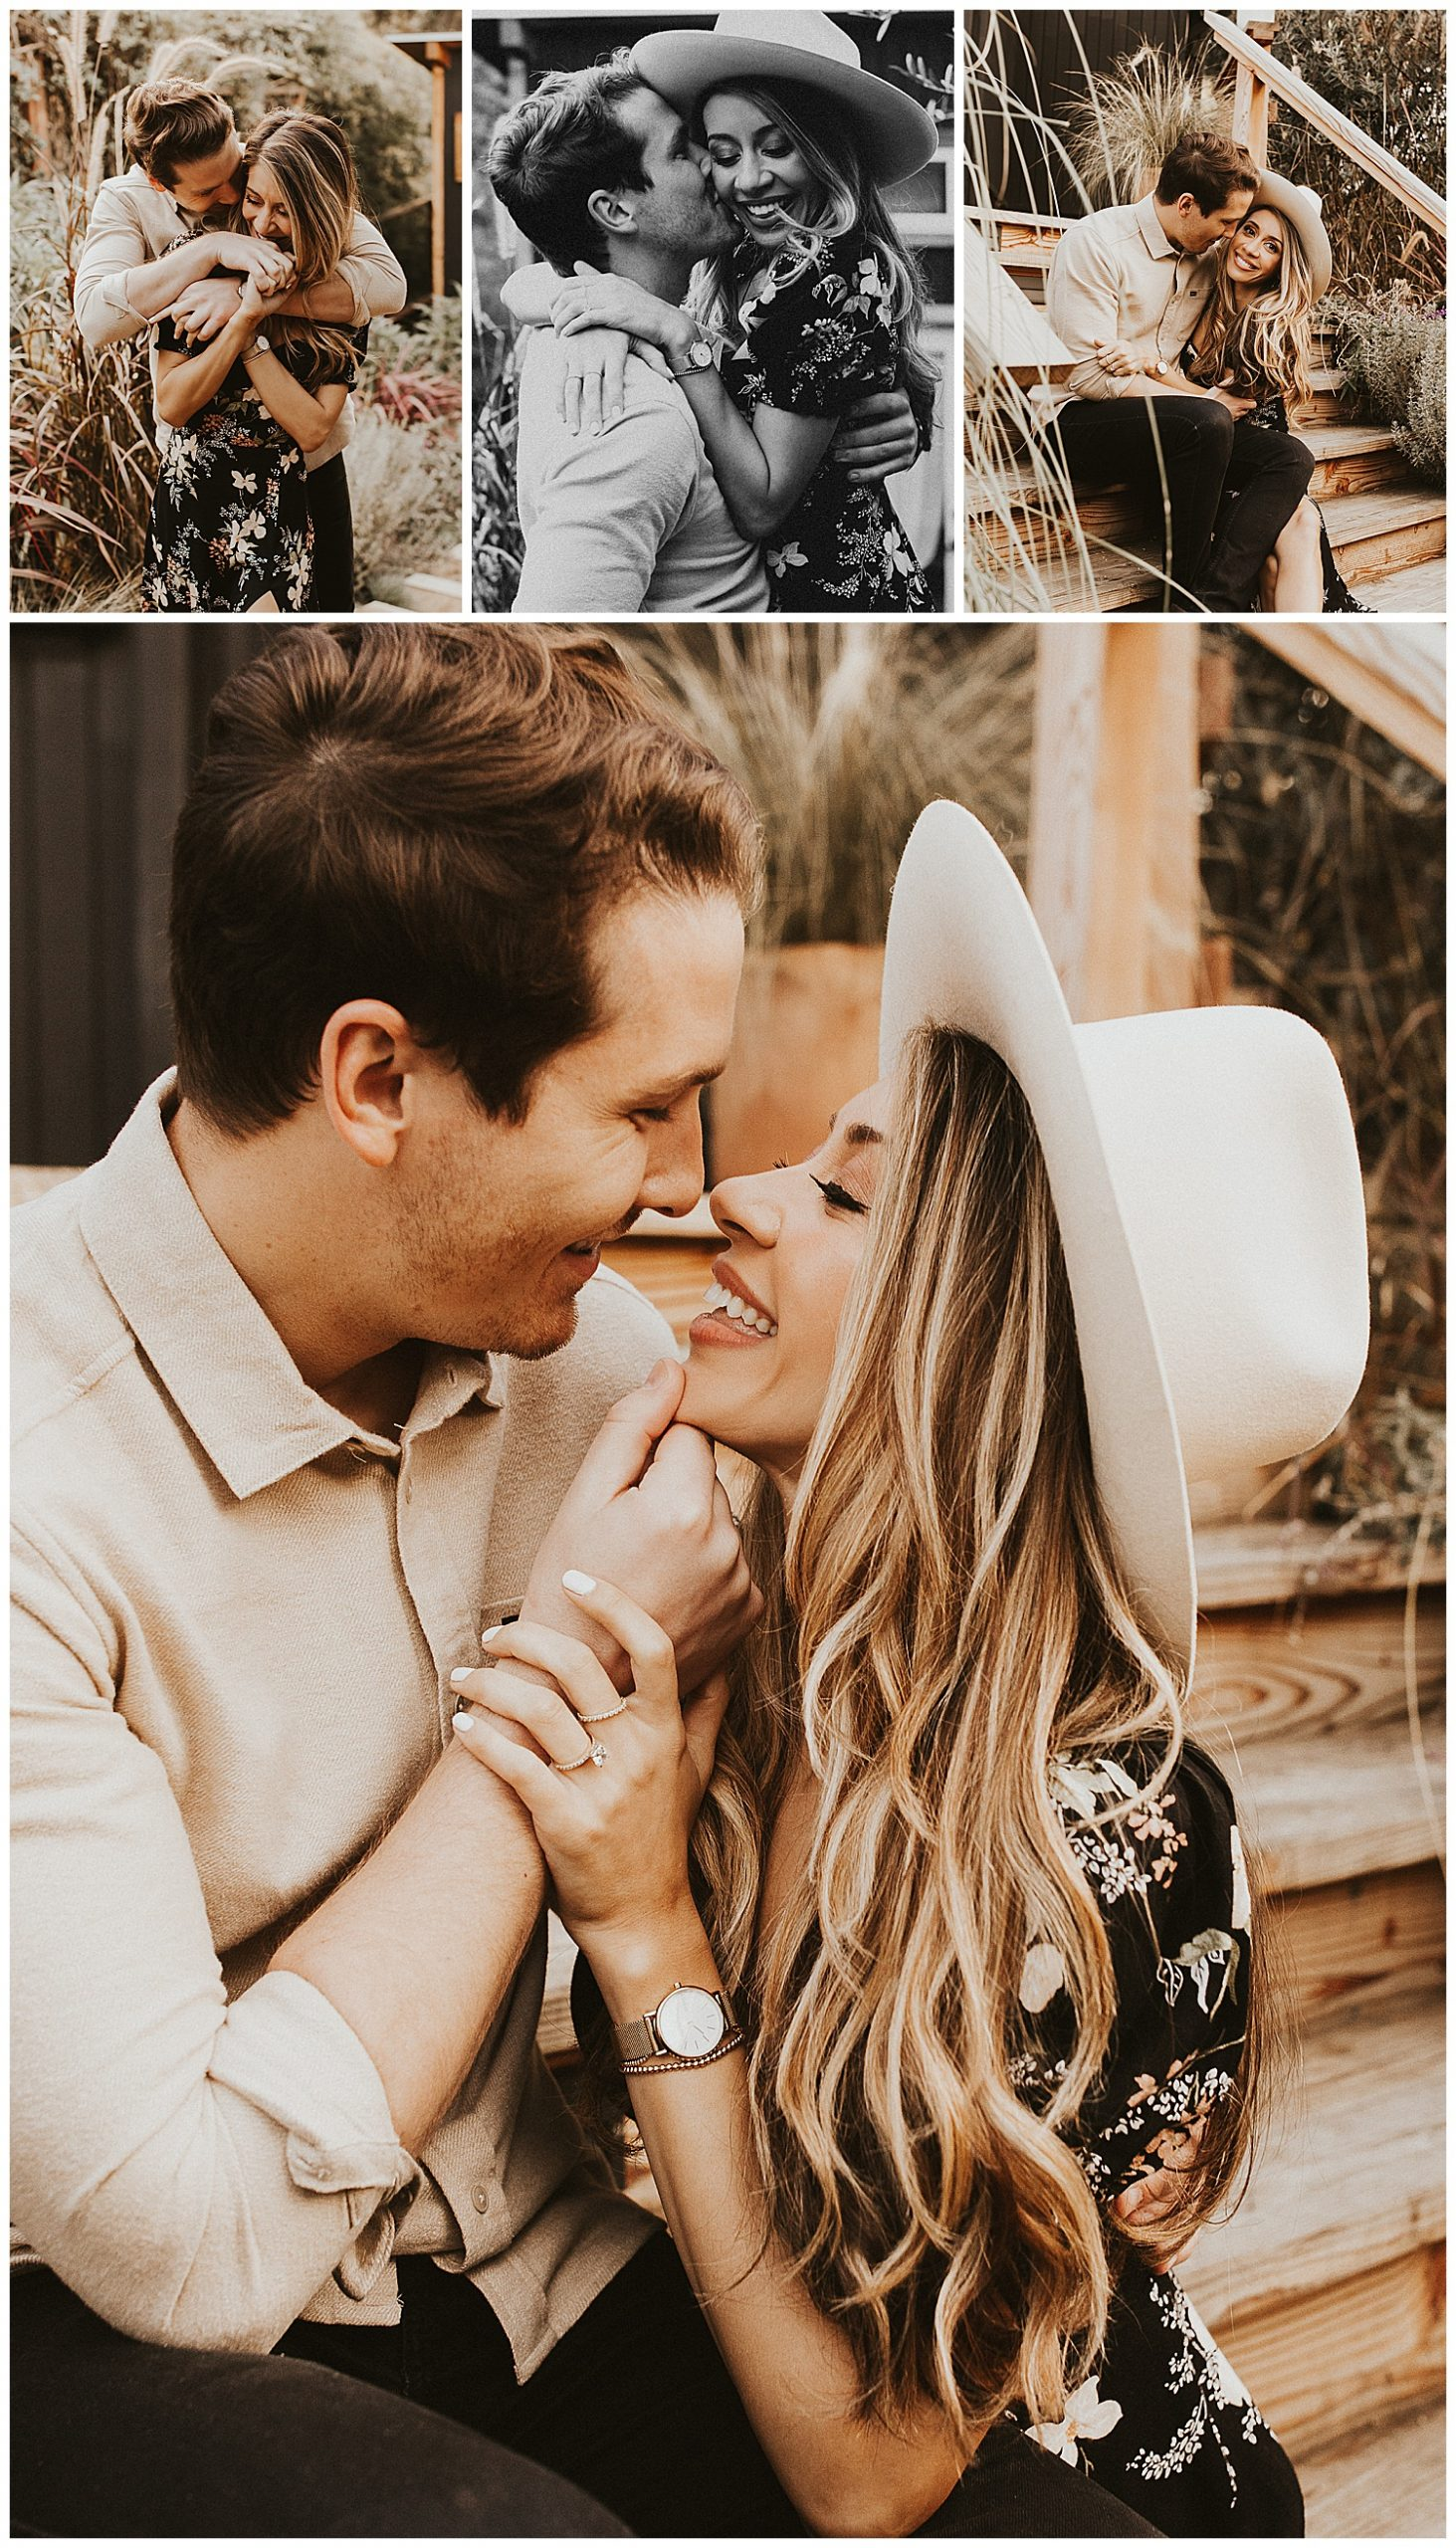 Topanga Canyon engagement shoot, engagement photography, Junebug magazine, This wild romance photo, Wedding Photographer, in home photoshoot, Orange County Wedding Photographer,